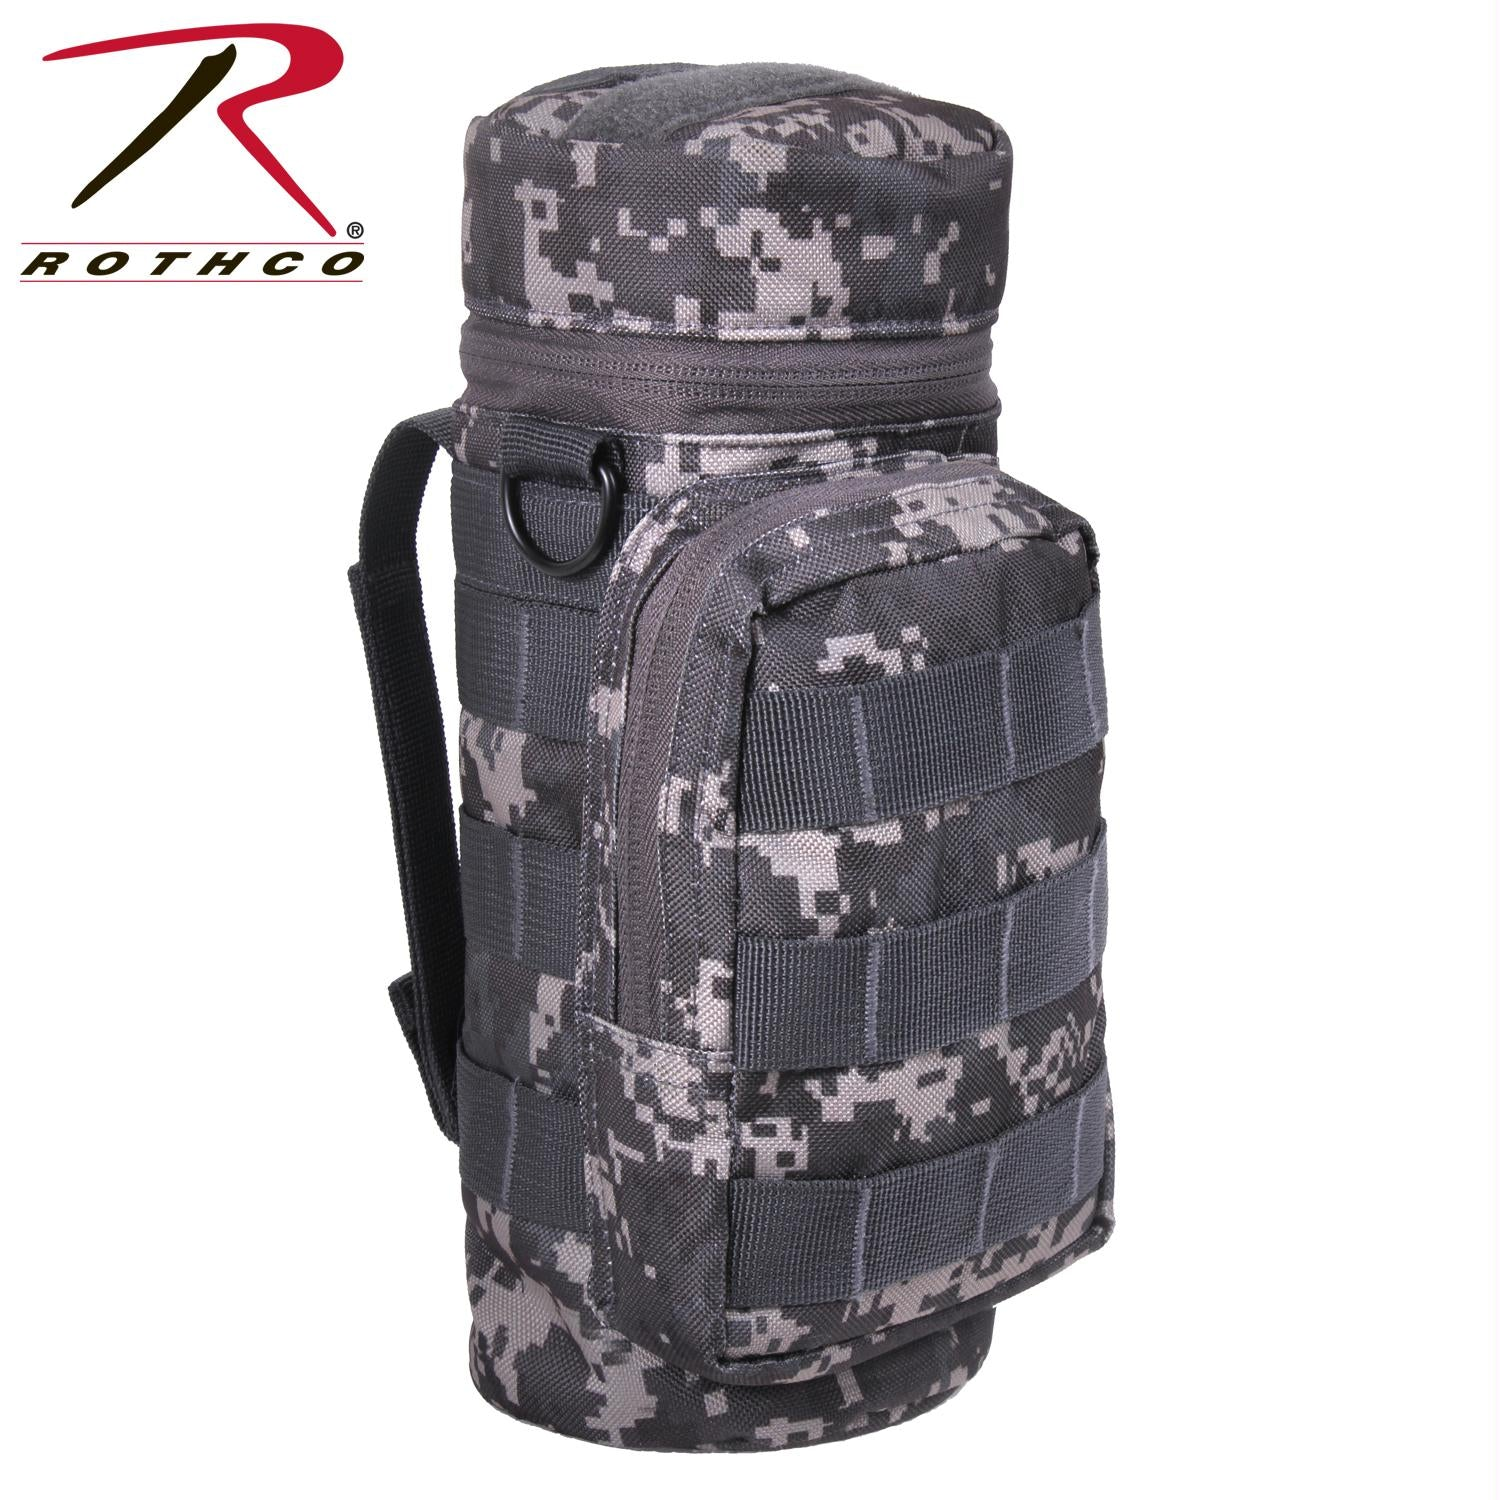 Rothco MOLLE Compatible Water Bottle Pouch - Subdued Urban Digital Camo